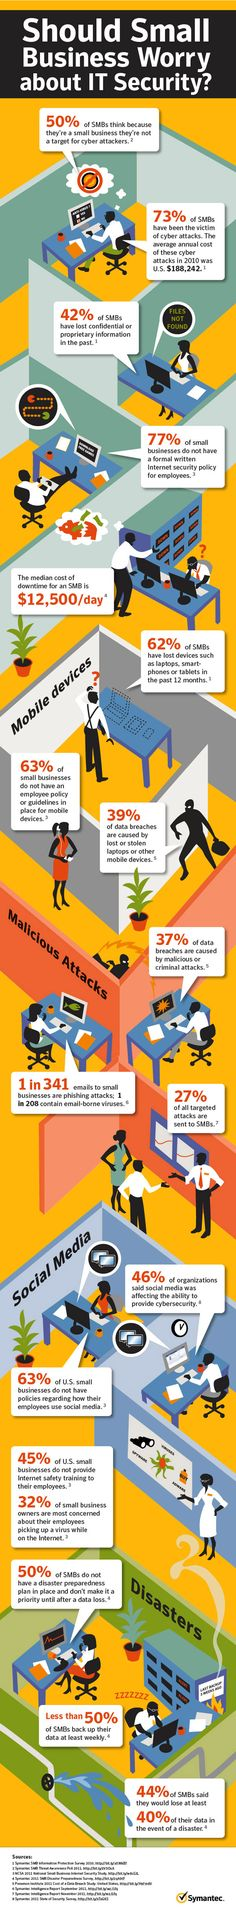 Should Small Business Worry about IT Security? #SMB